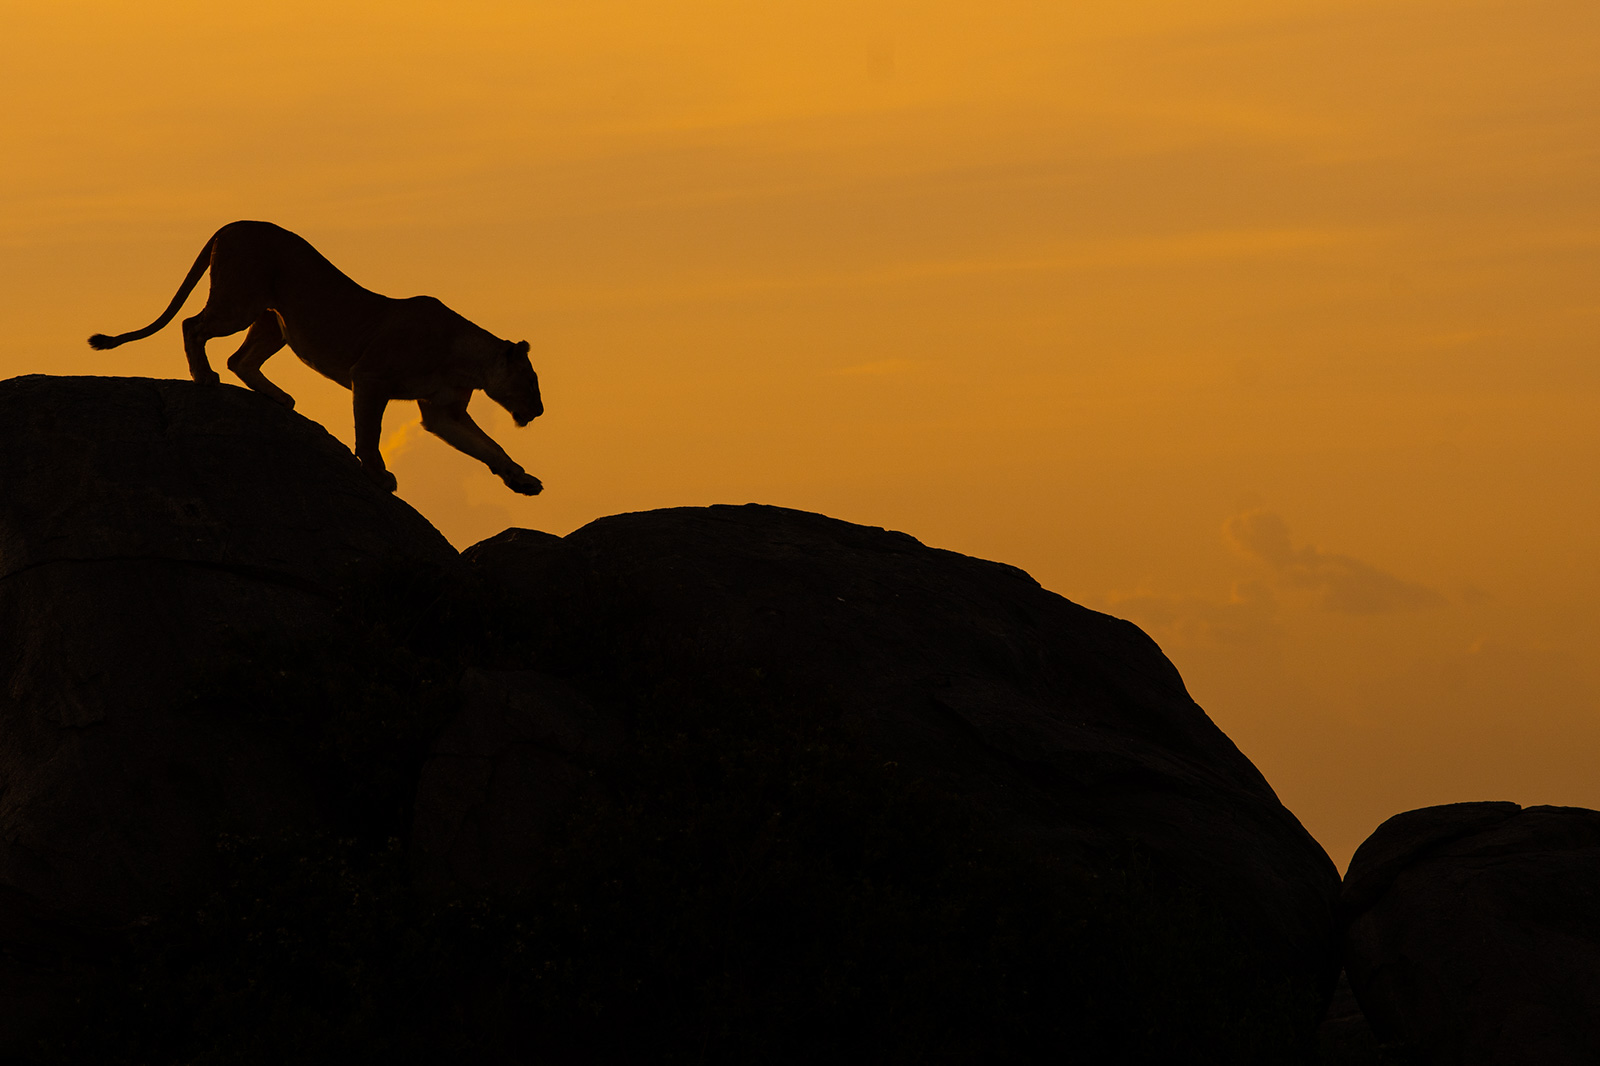 Silhouetted lion